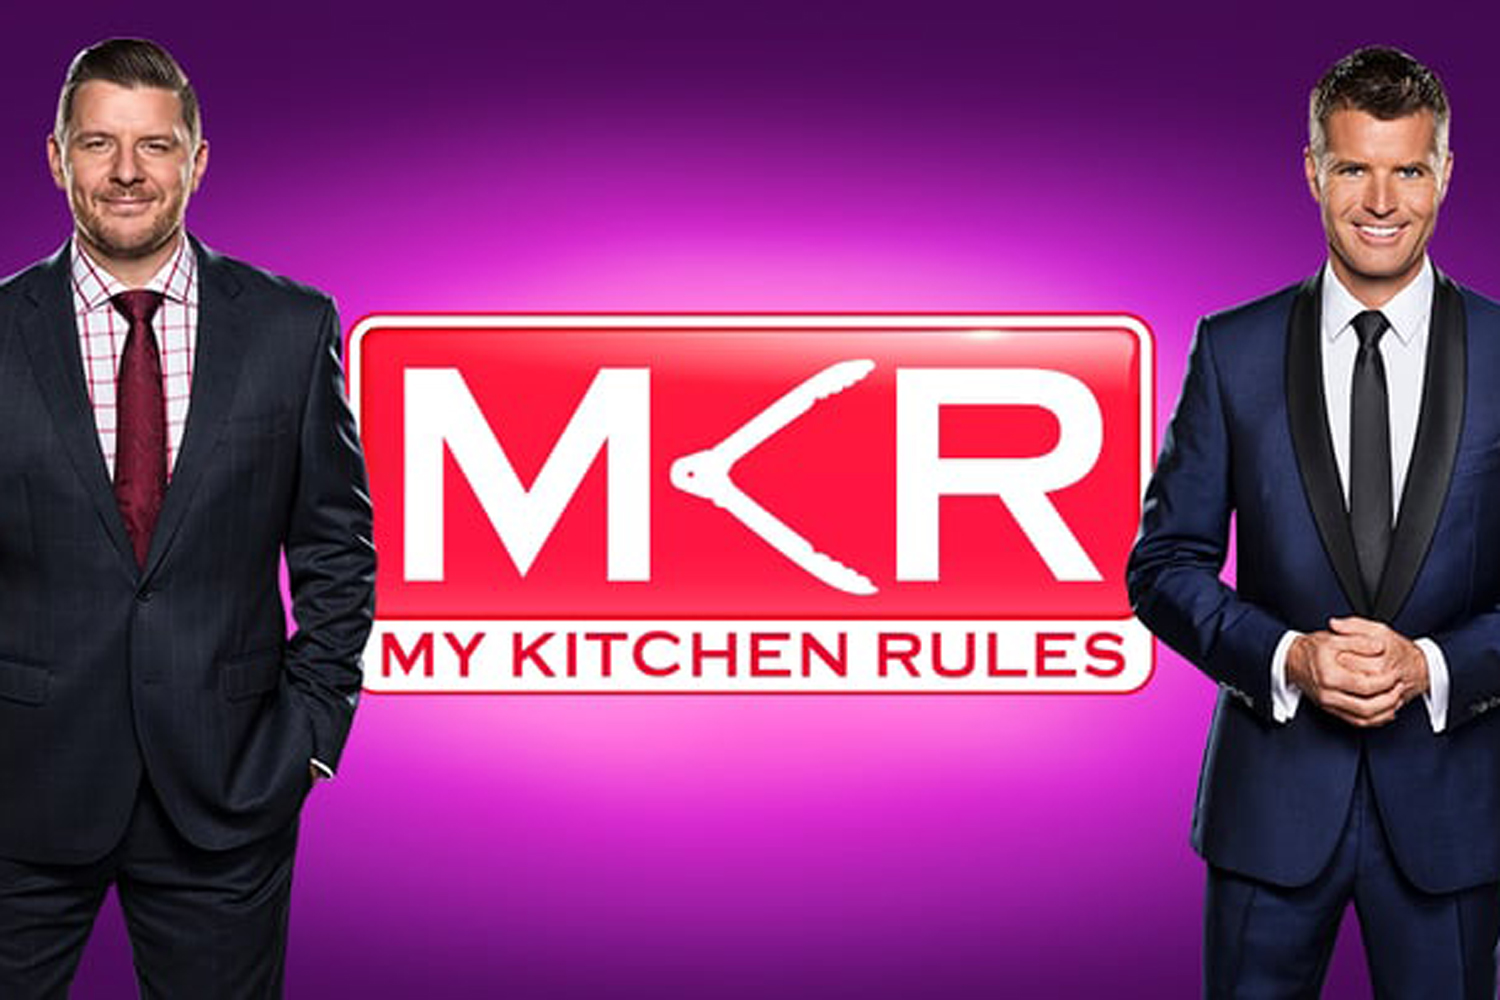 My Kitchen Rules contestants kicked off for inappropriate